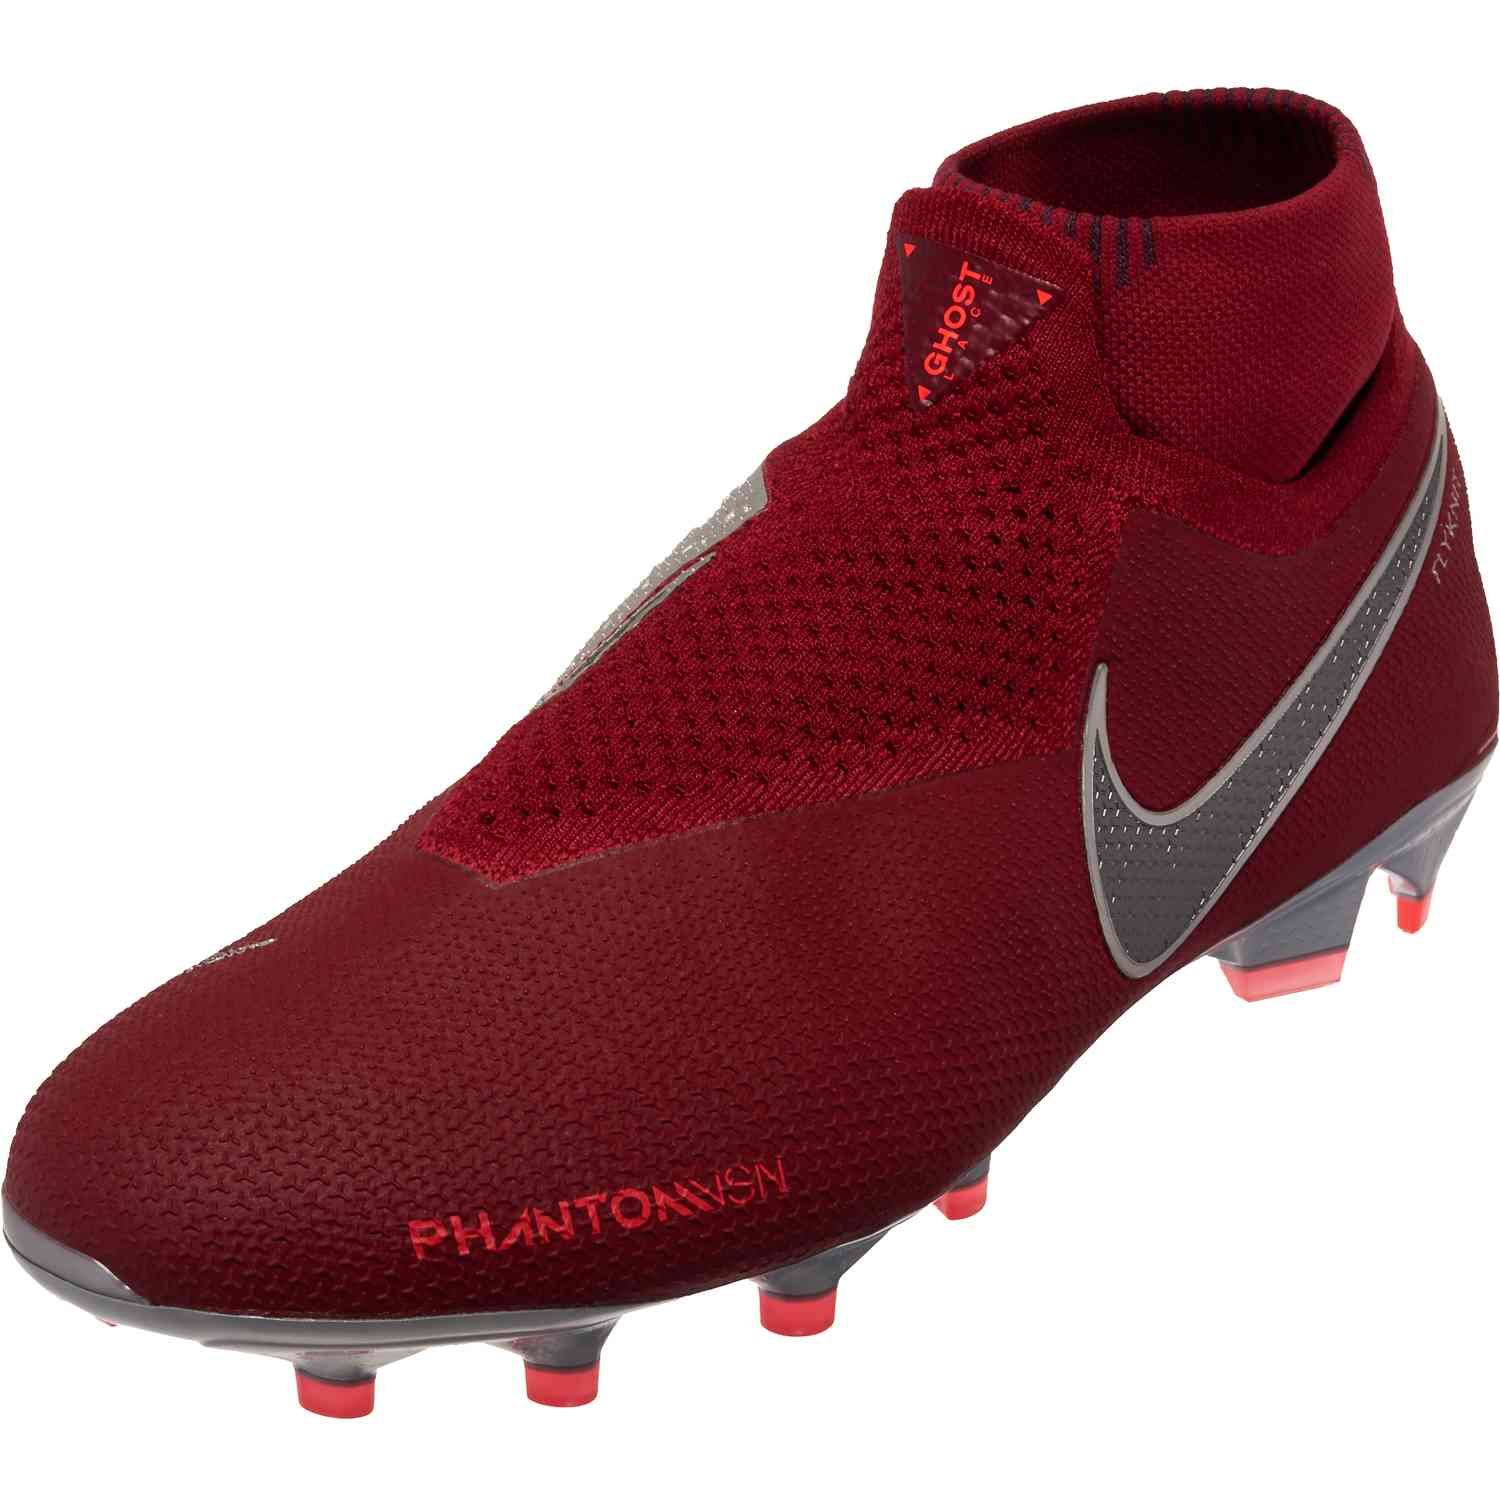 Nike Phantom Vision Elite FG – Team Red Metallic Dark Grey Bright ... 24e5c5eb3c112